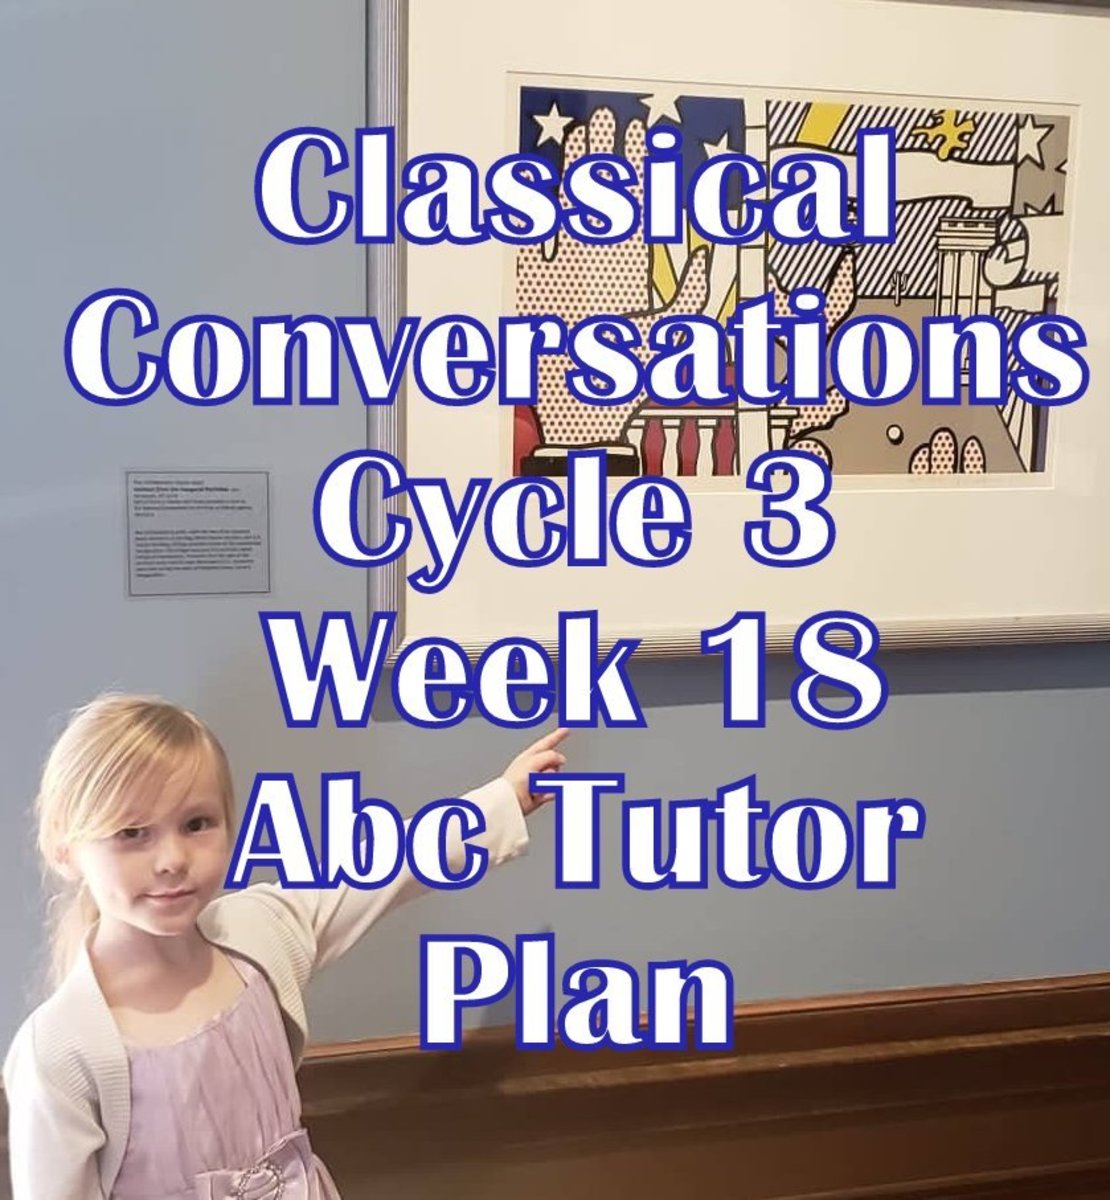 CC Cycle 3 Week 18 Lesson for Abecedarian Tutors